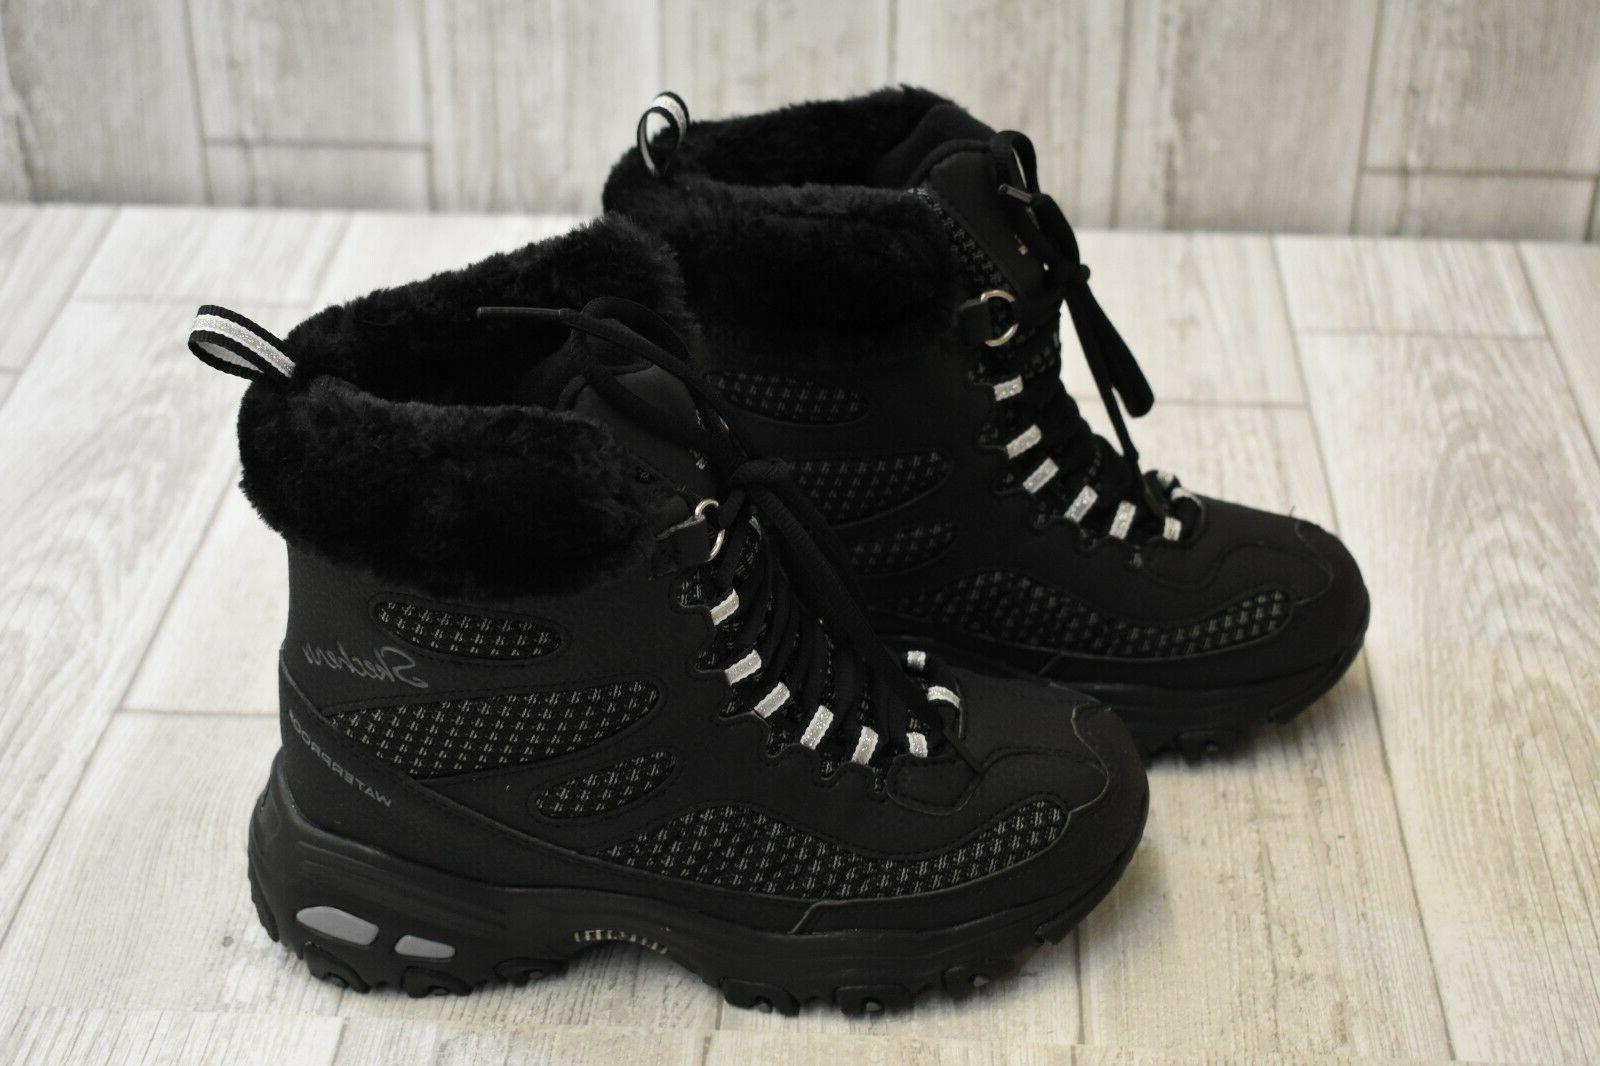 SKECHERS D'Lites Snow Plaza Women's Size Black